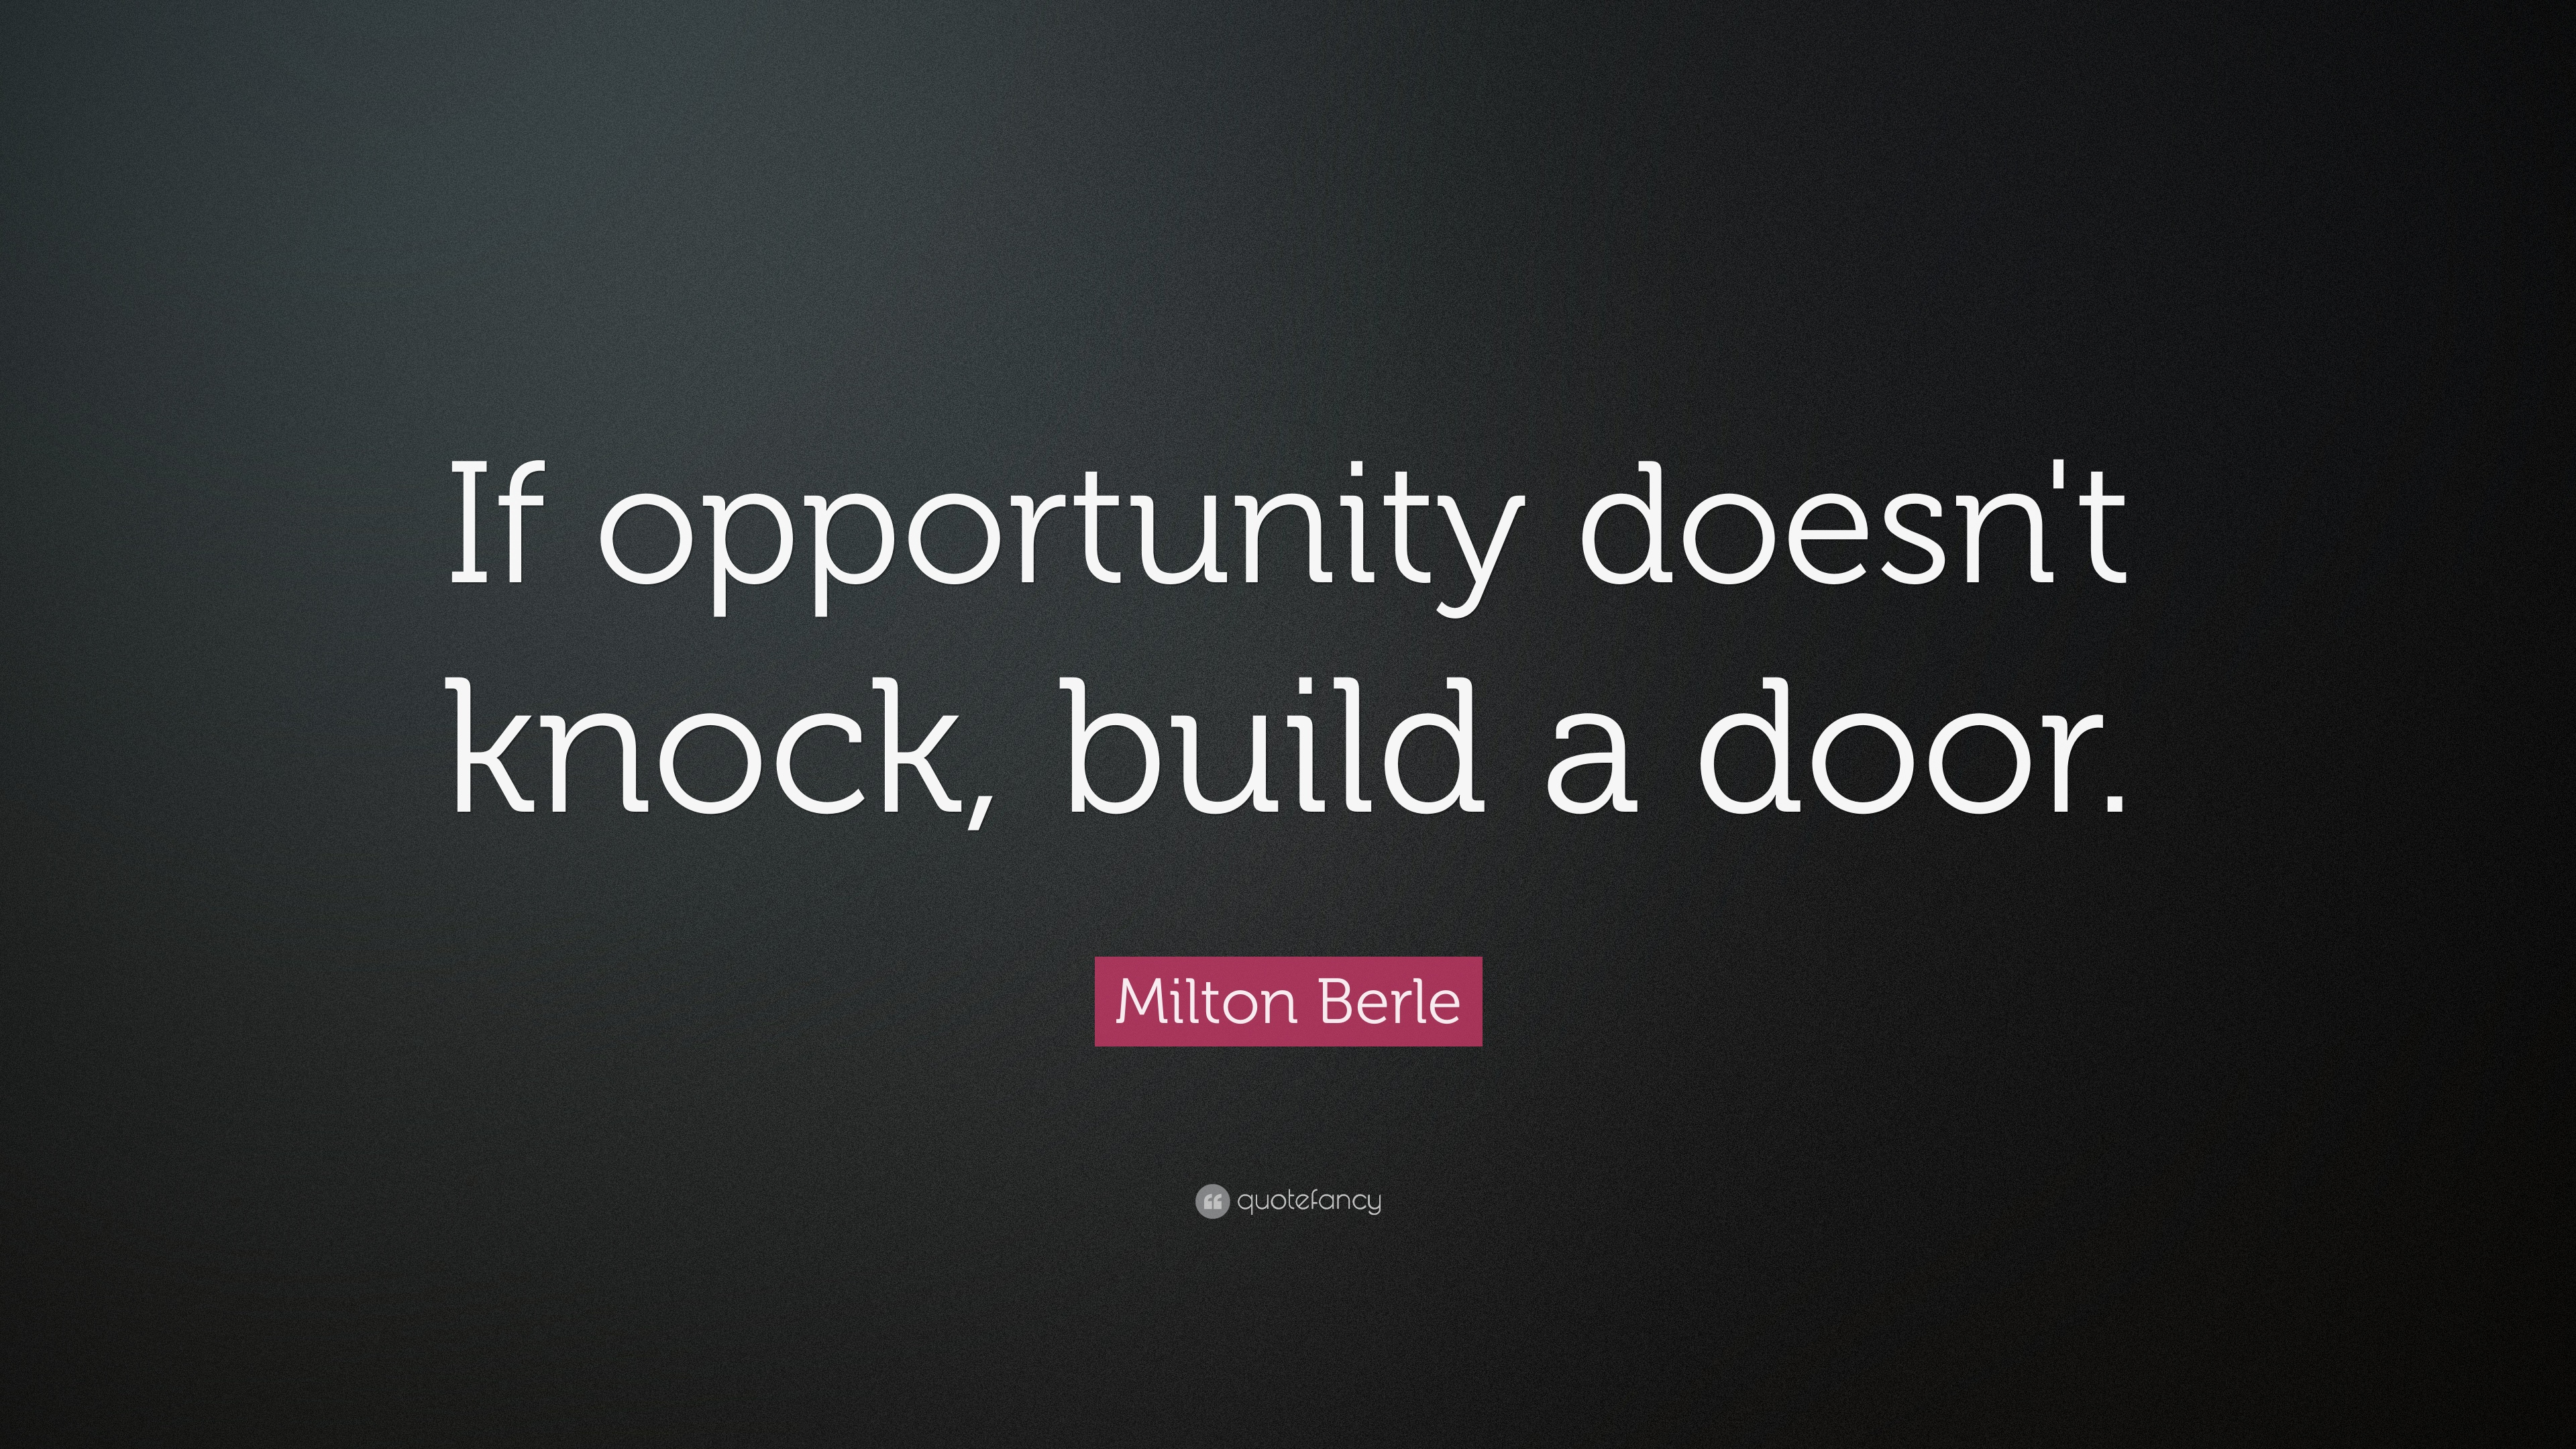 Positive Quotes: U201cIf Opportunity Doesnu0027t Knock, Build A Door.u201d